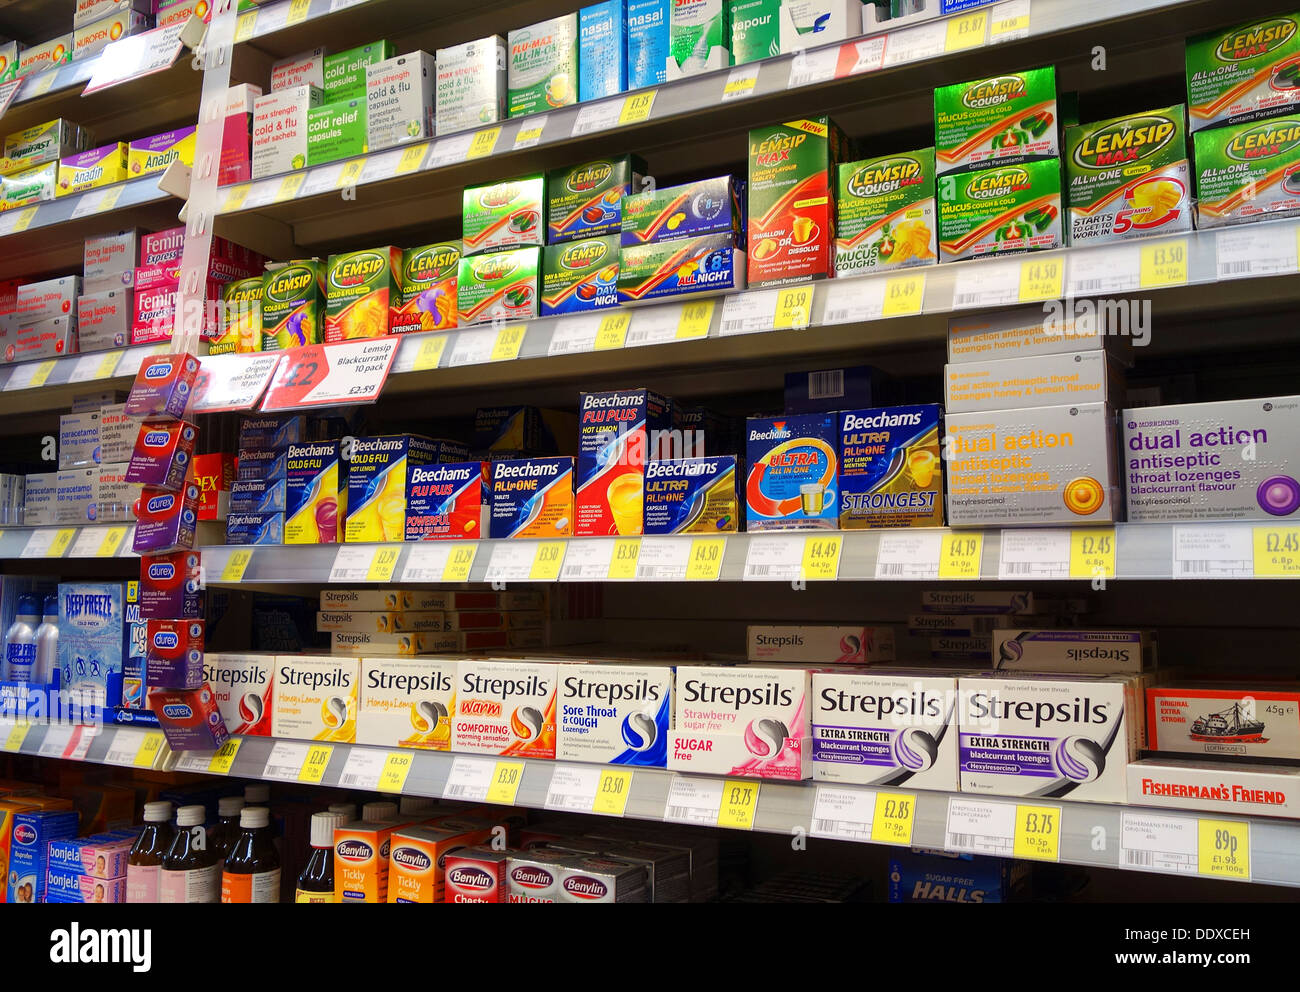 Cold and Flu relief medicines on sale in a UK supermarket - Stock Image